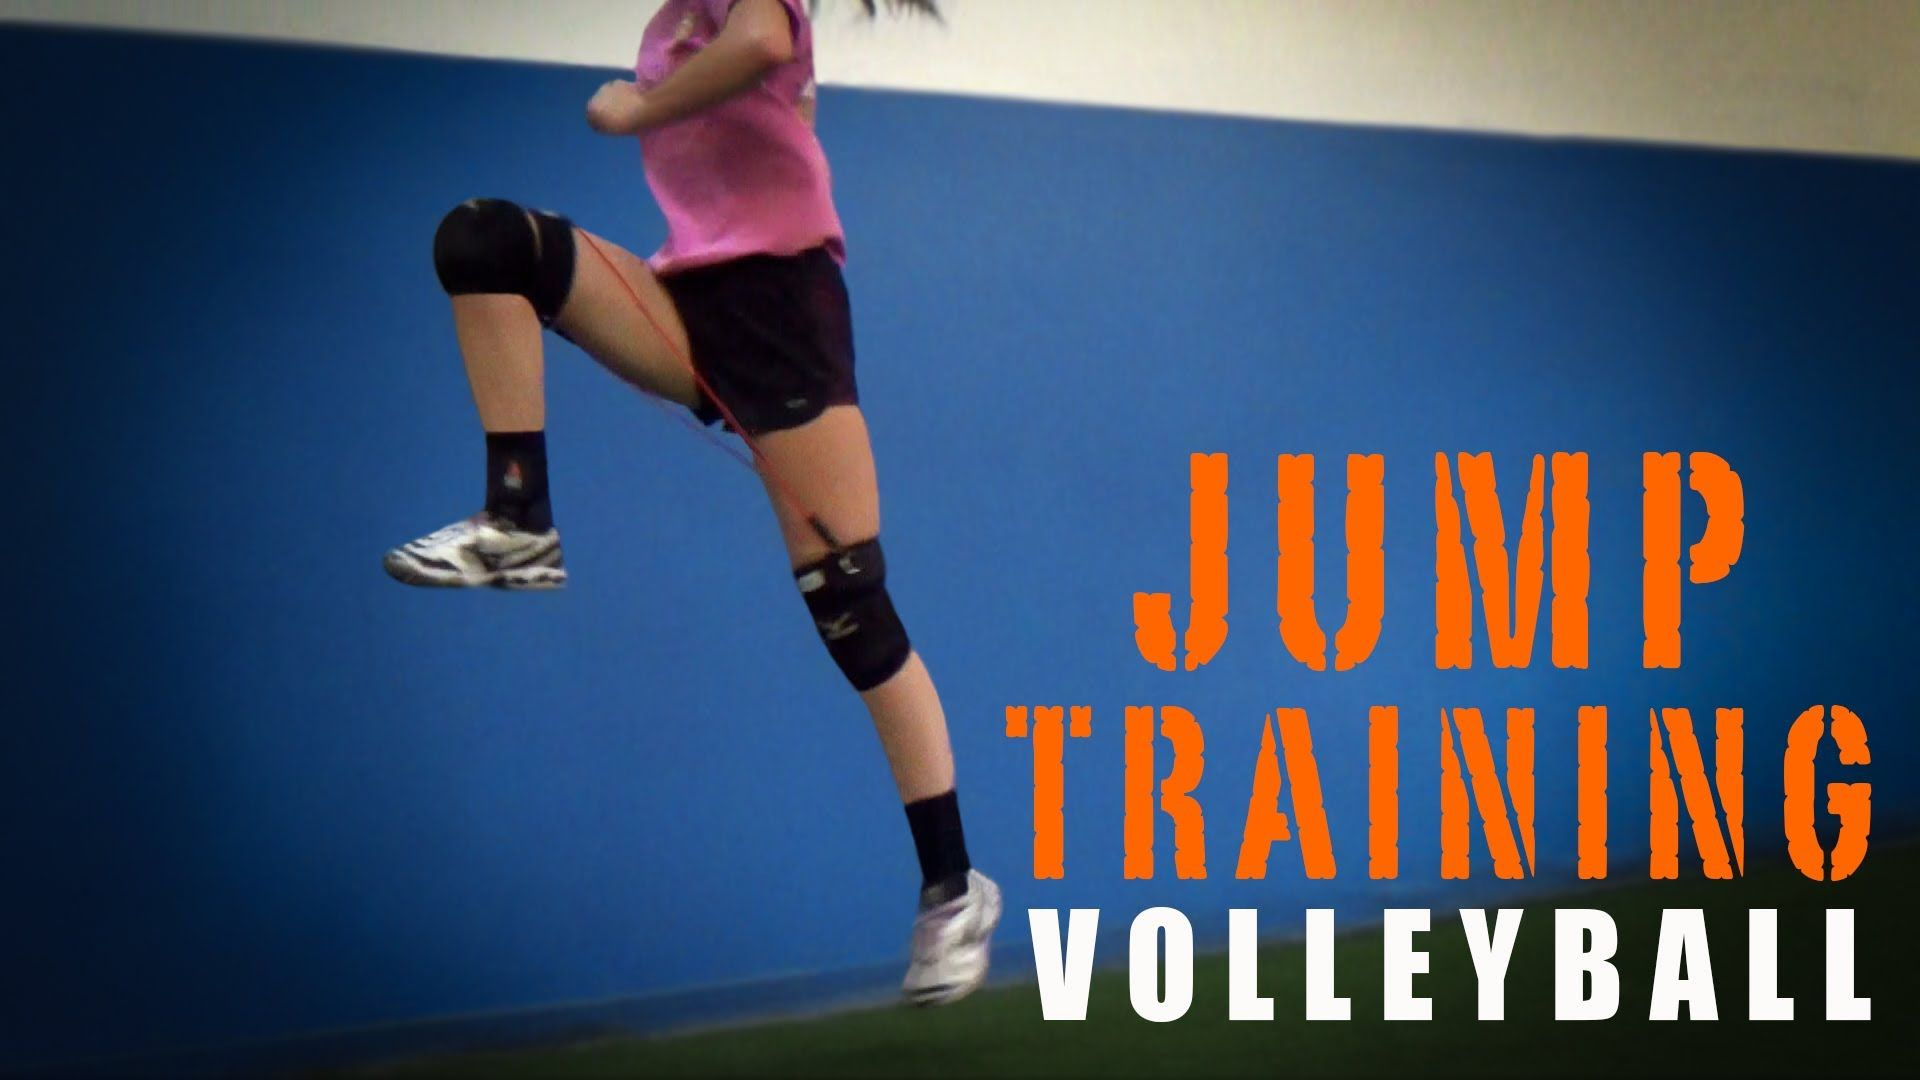 Pin By Cortney Danae Hoff On Volleyball Girl Volleyball Training Volleyball Skills Coaching Volleyball